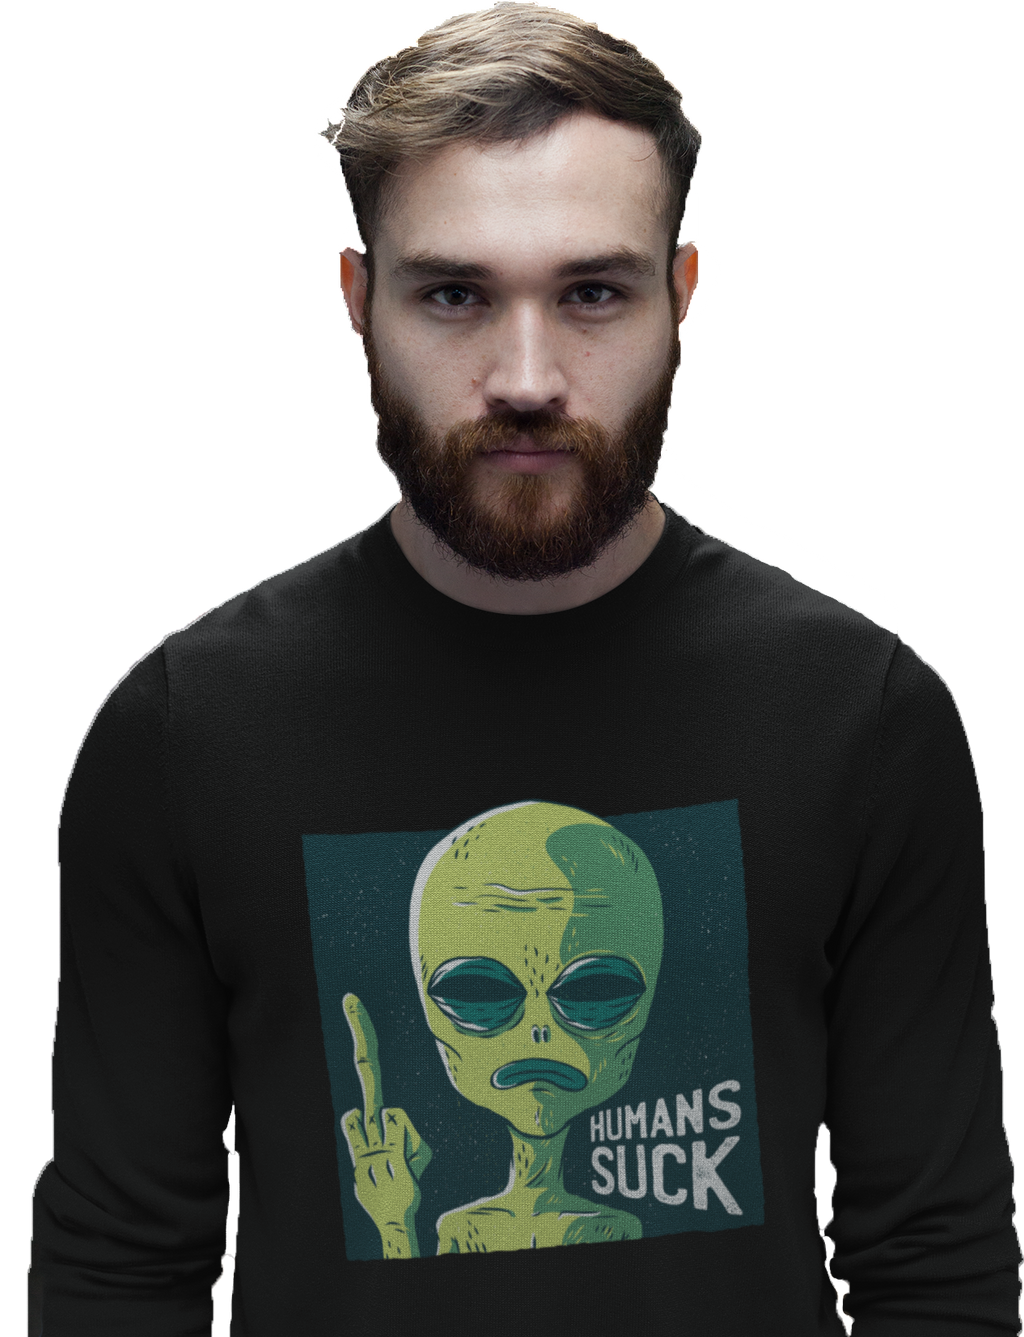 Humans Suck Men's Sweatshirt | Sweatshirt | BFY Apparel | Streetwear & More